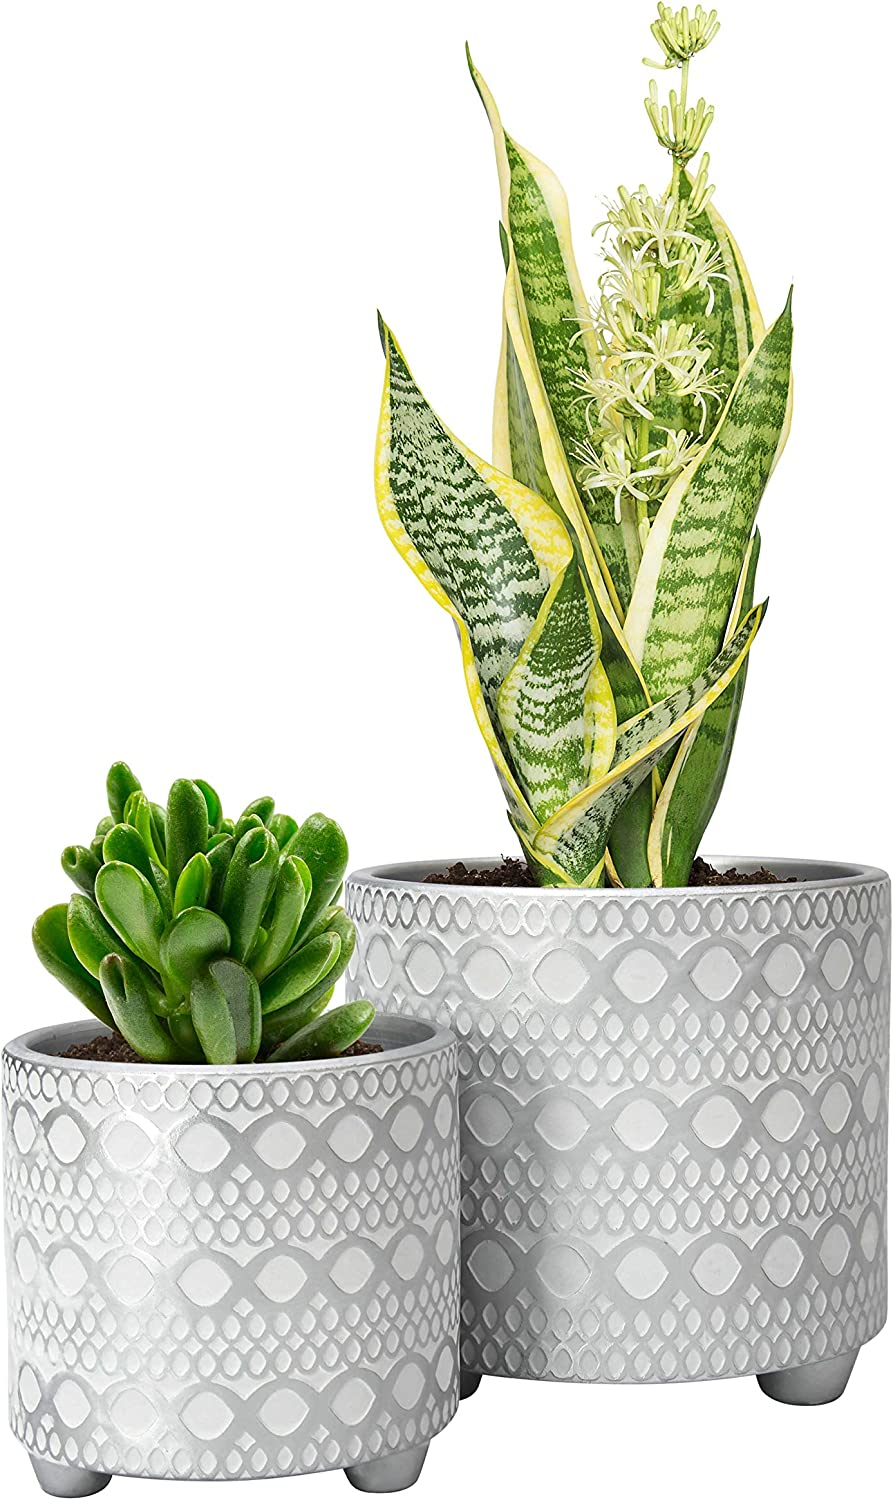 Set of 2 Planter Pots, 4 Inch & 6 Inch, Modern Design Ceramic Plants Pot with Drainage Hole, Silver/White